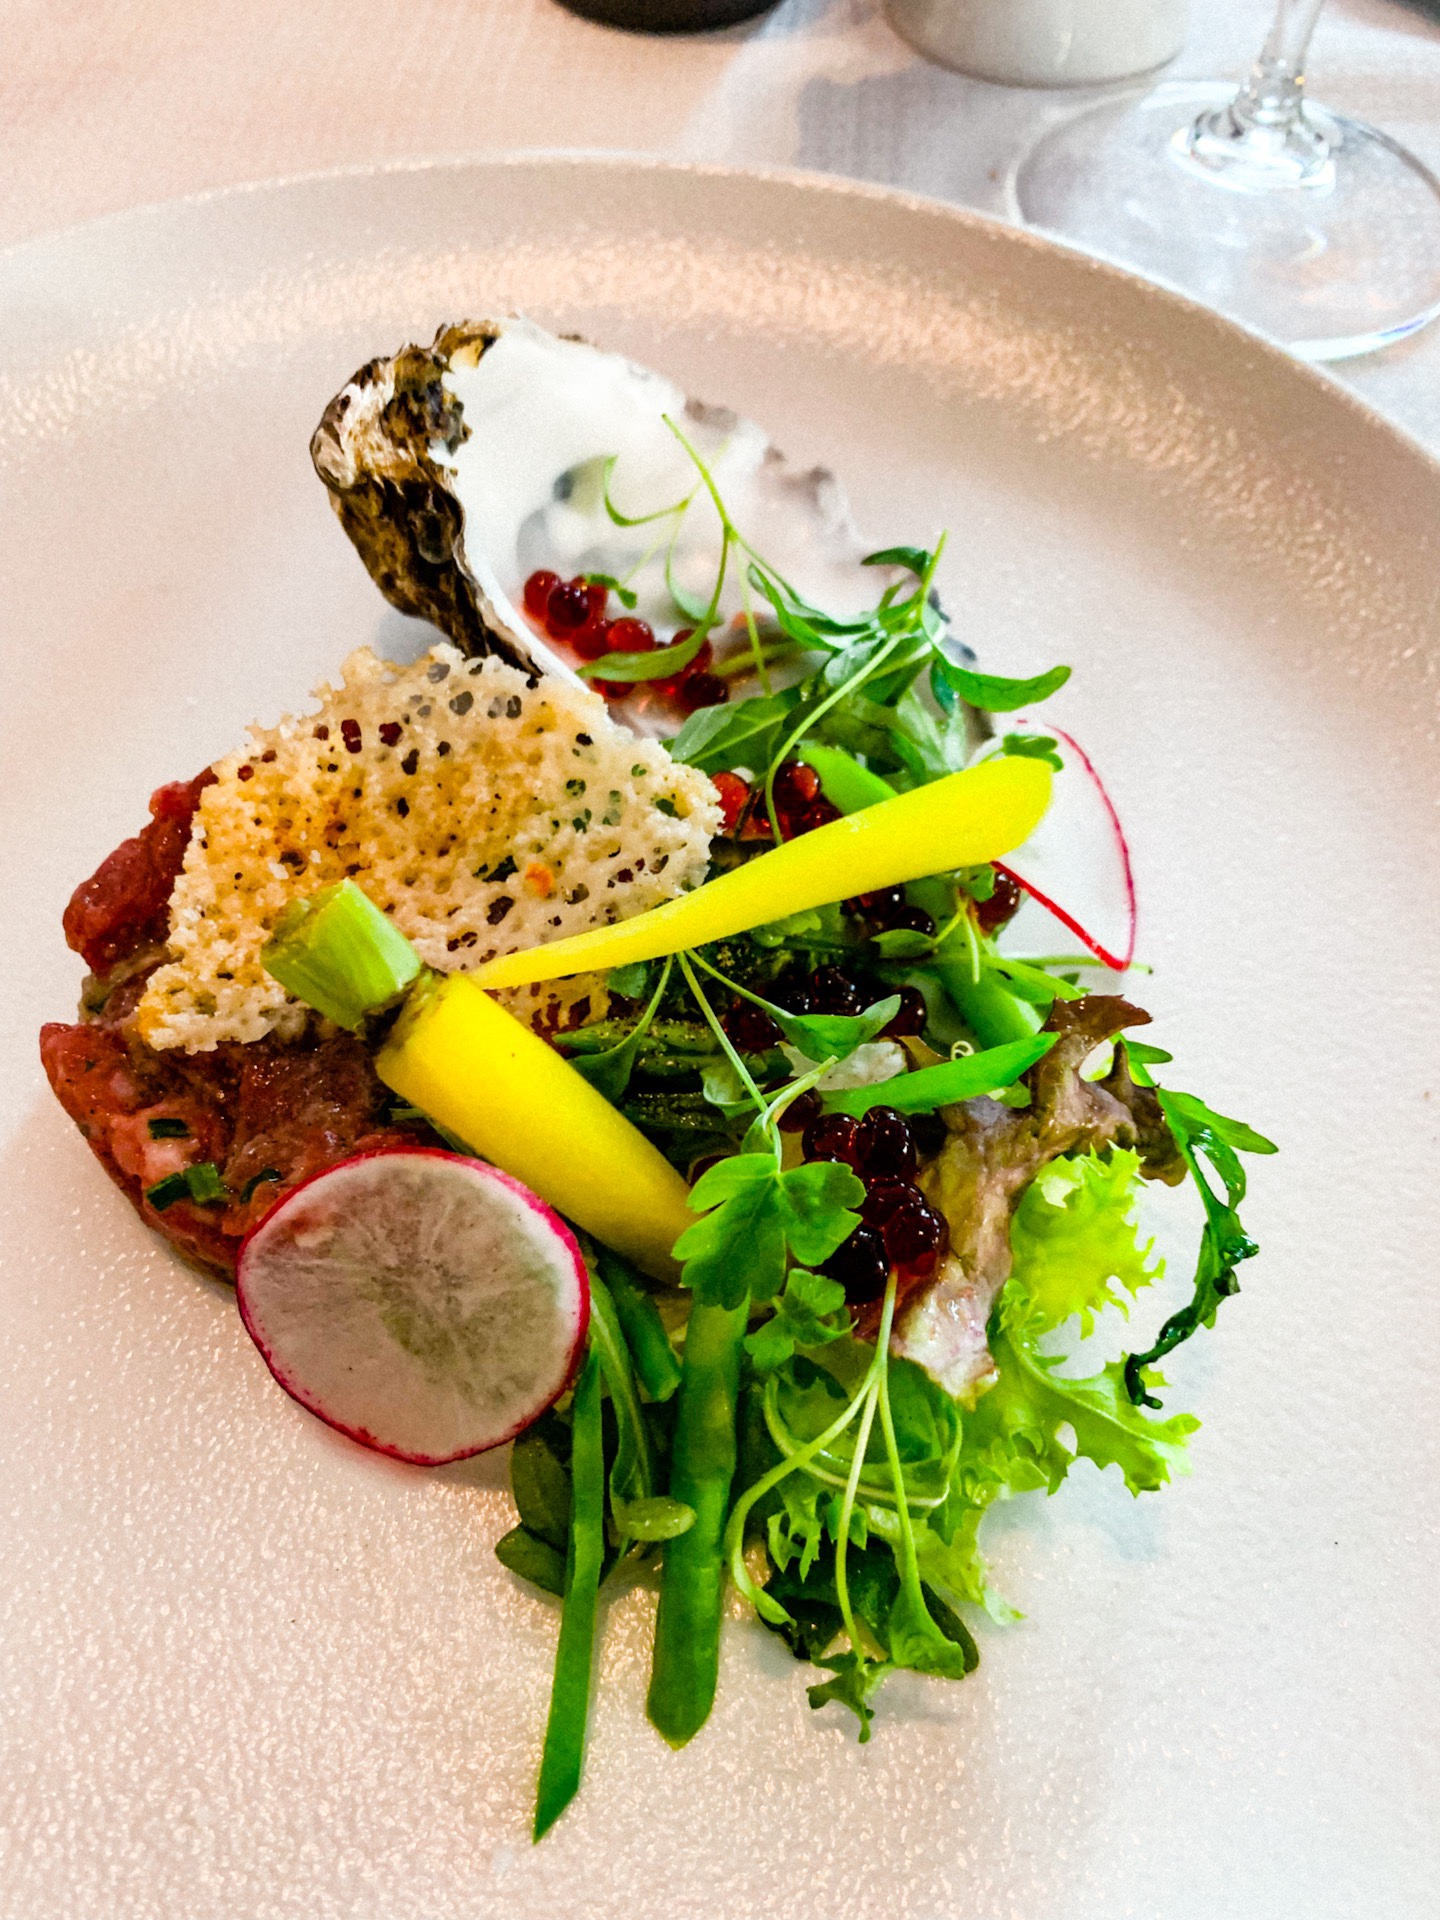 Our company had 2 vegetarians and 1 pregnant woman and then the 3 other choose the meat menue. The starter was oyster and beef tartar, what I did not expected was that the oyster was blended into the tartar. It was delicious! The best dish in the menue.